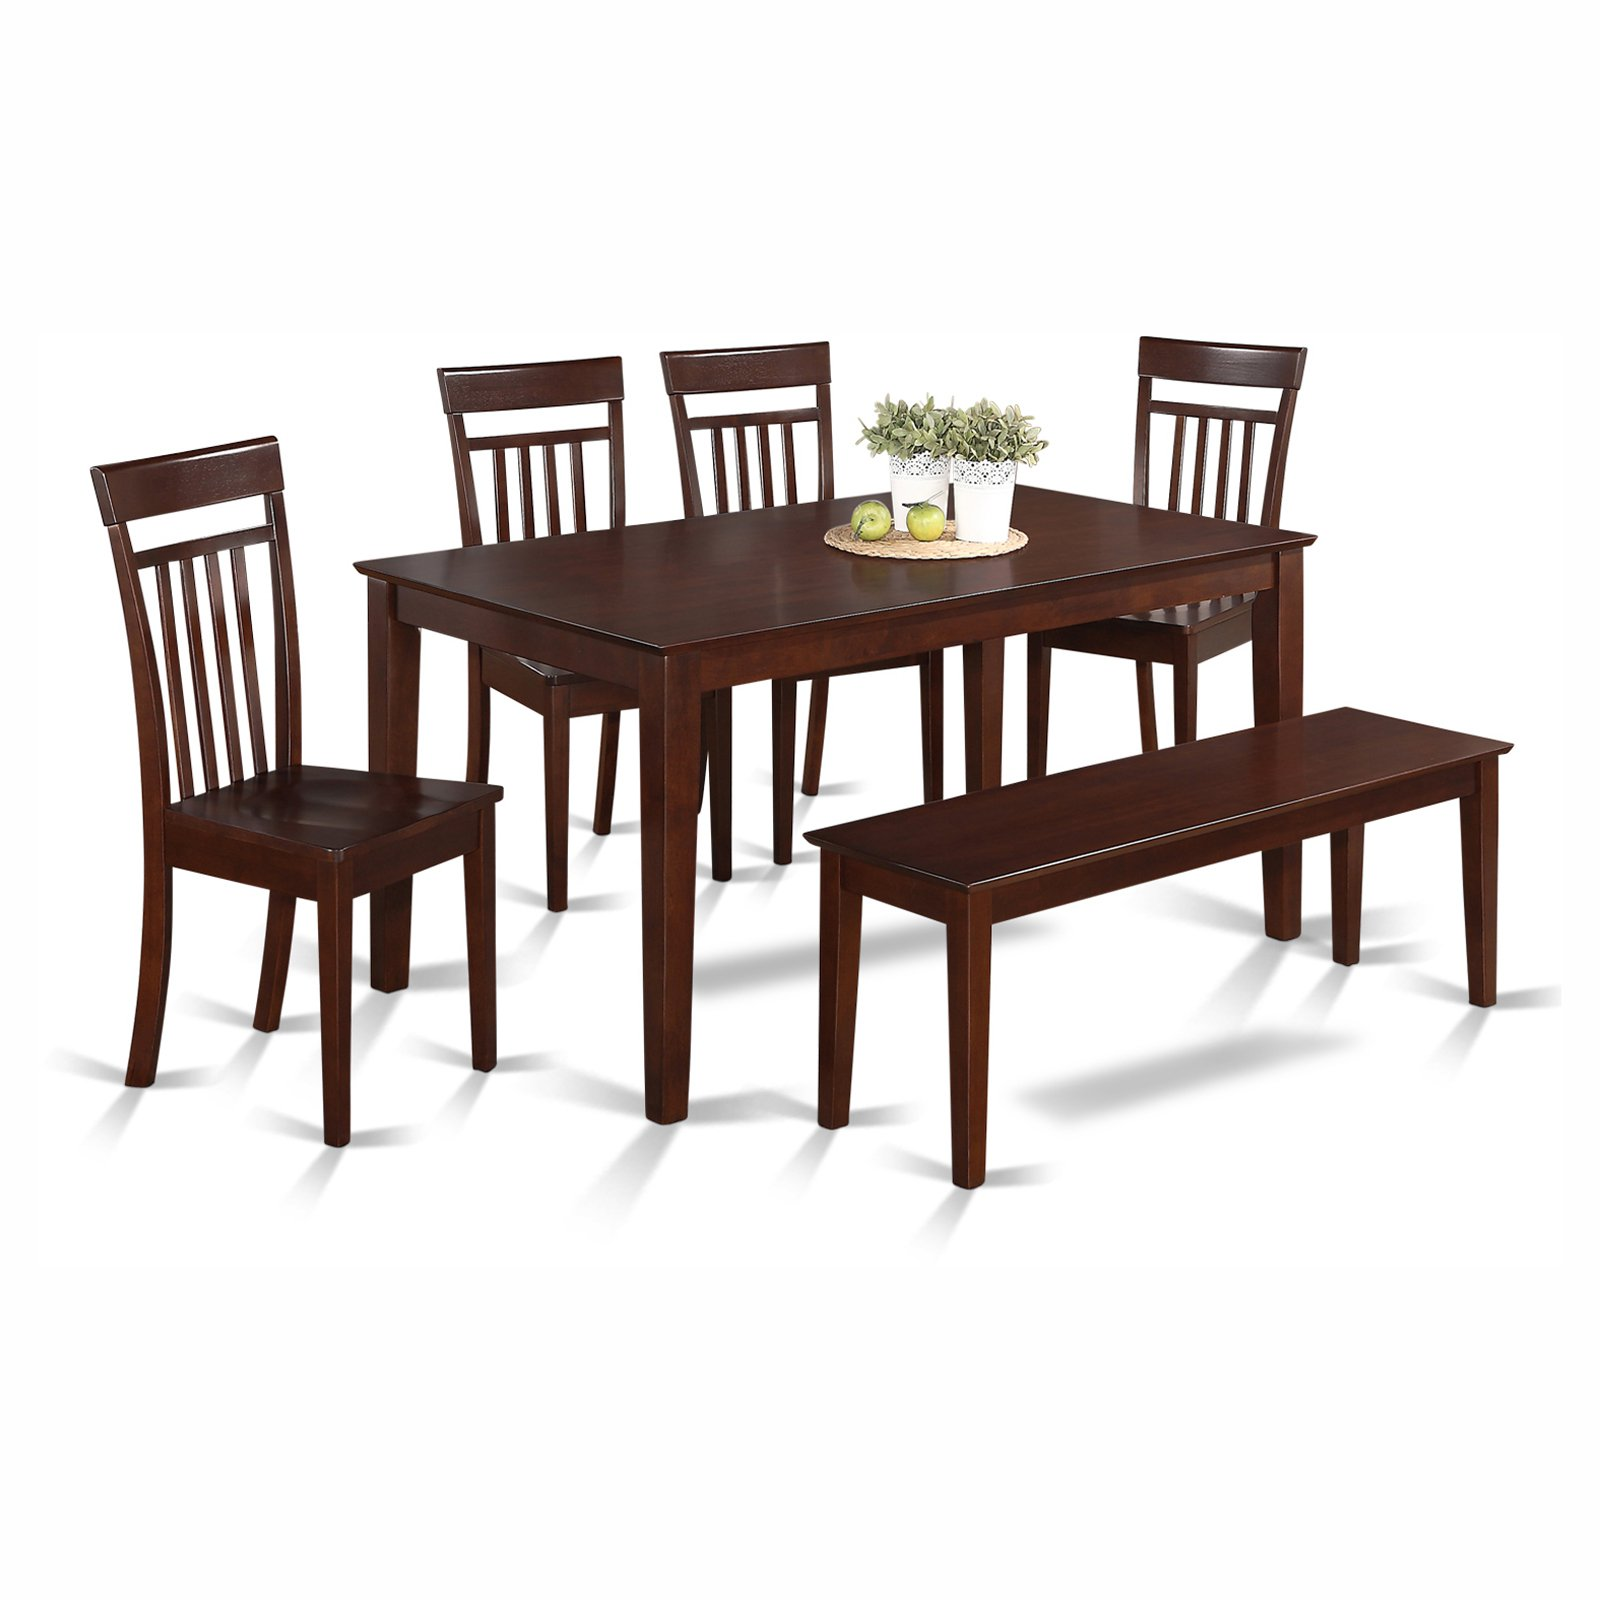 Nice East West Furniture Capri 6 Piece Rectangular Dining Table Set With Wooden  Seat Chairs